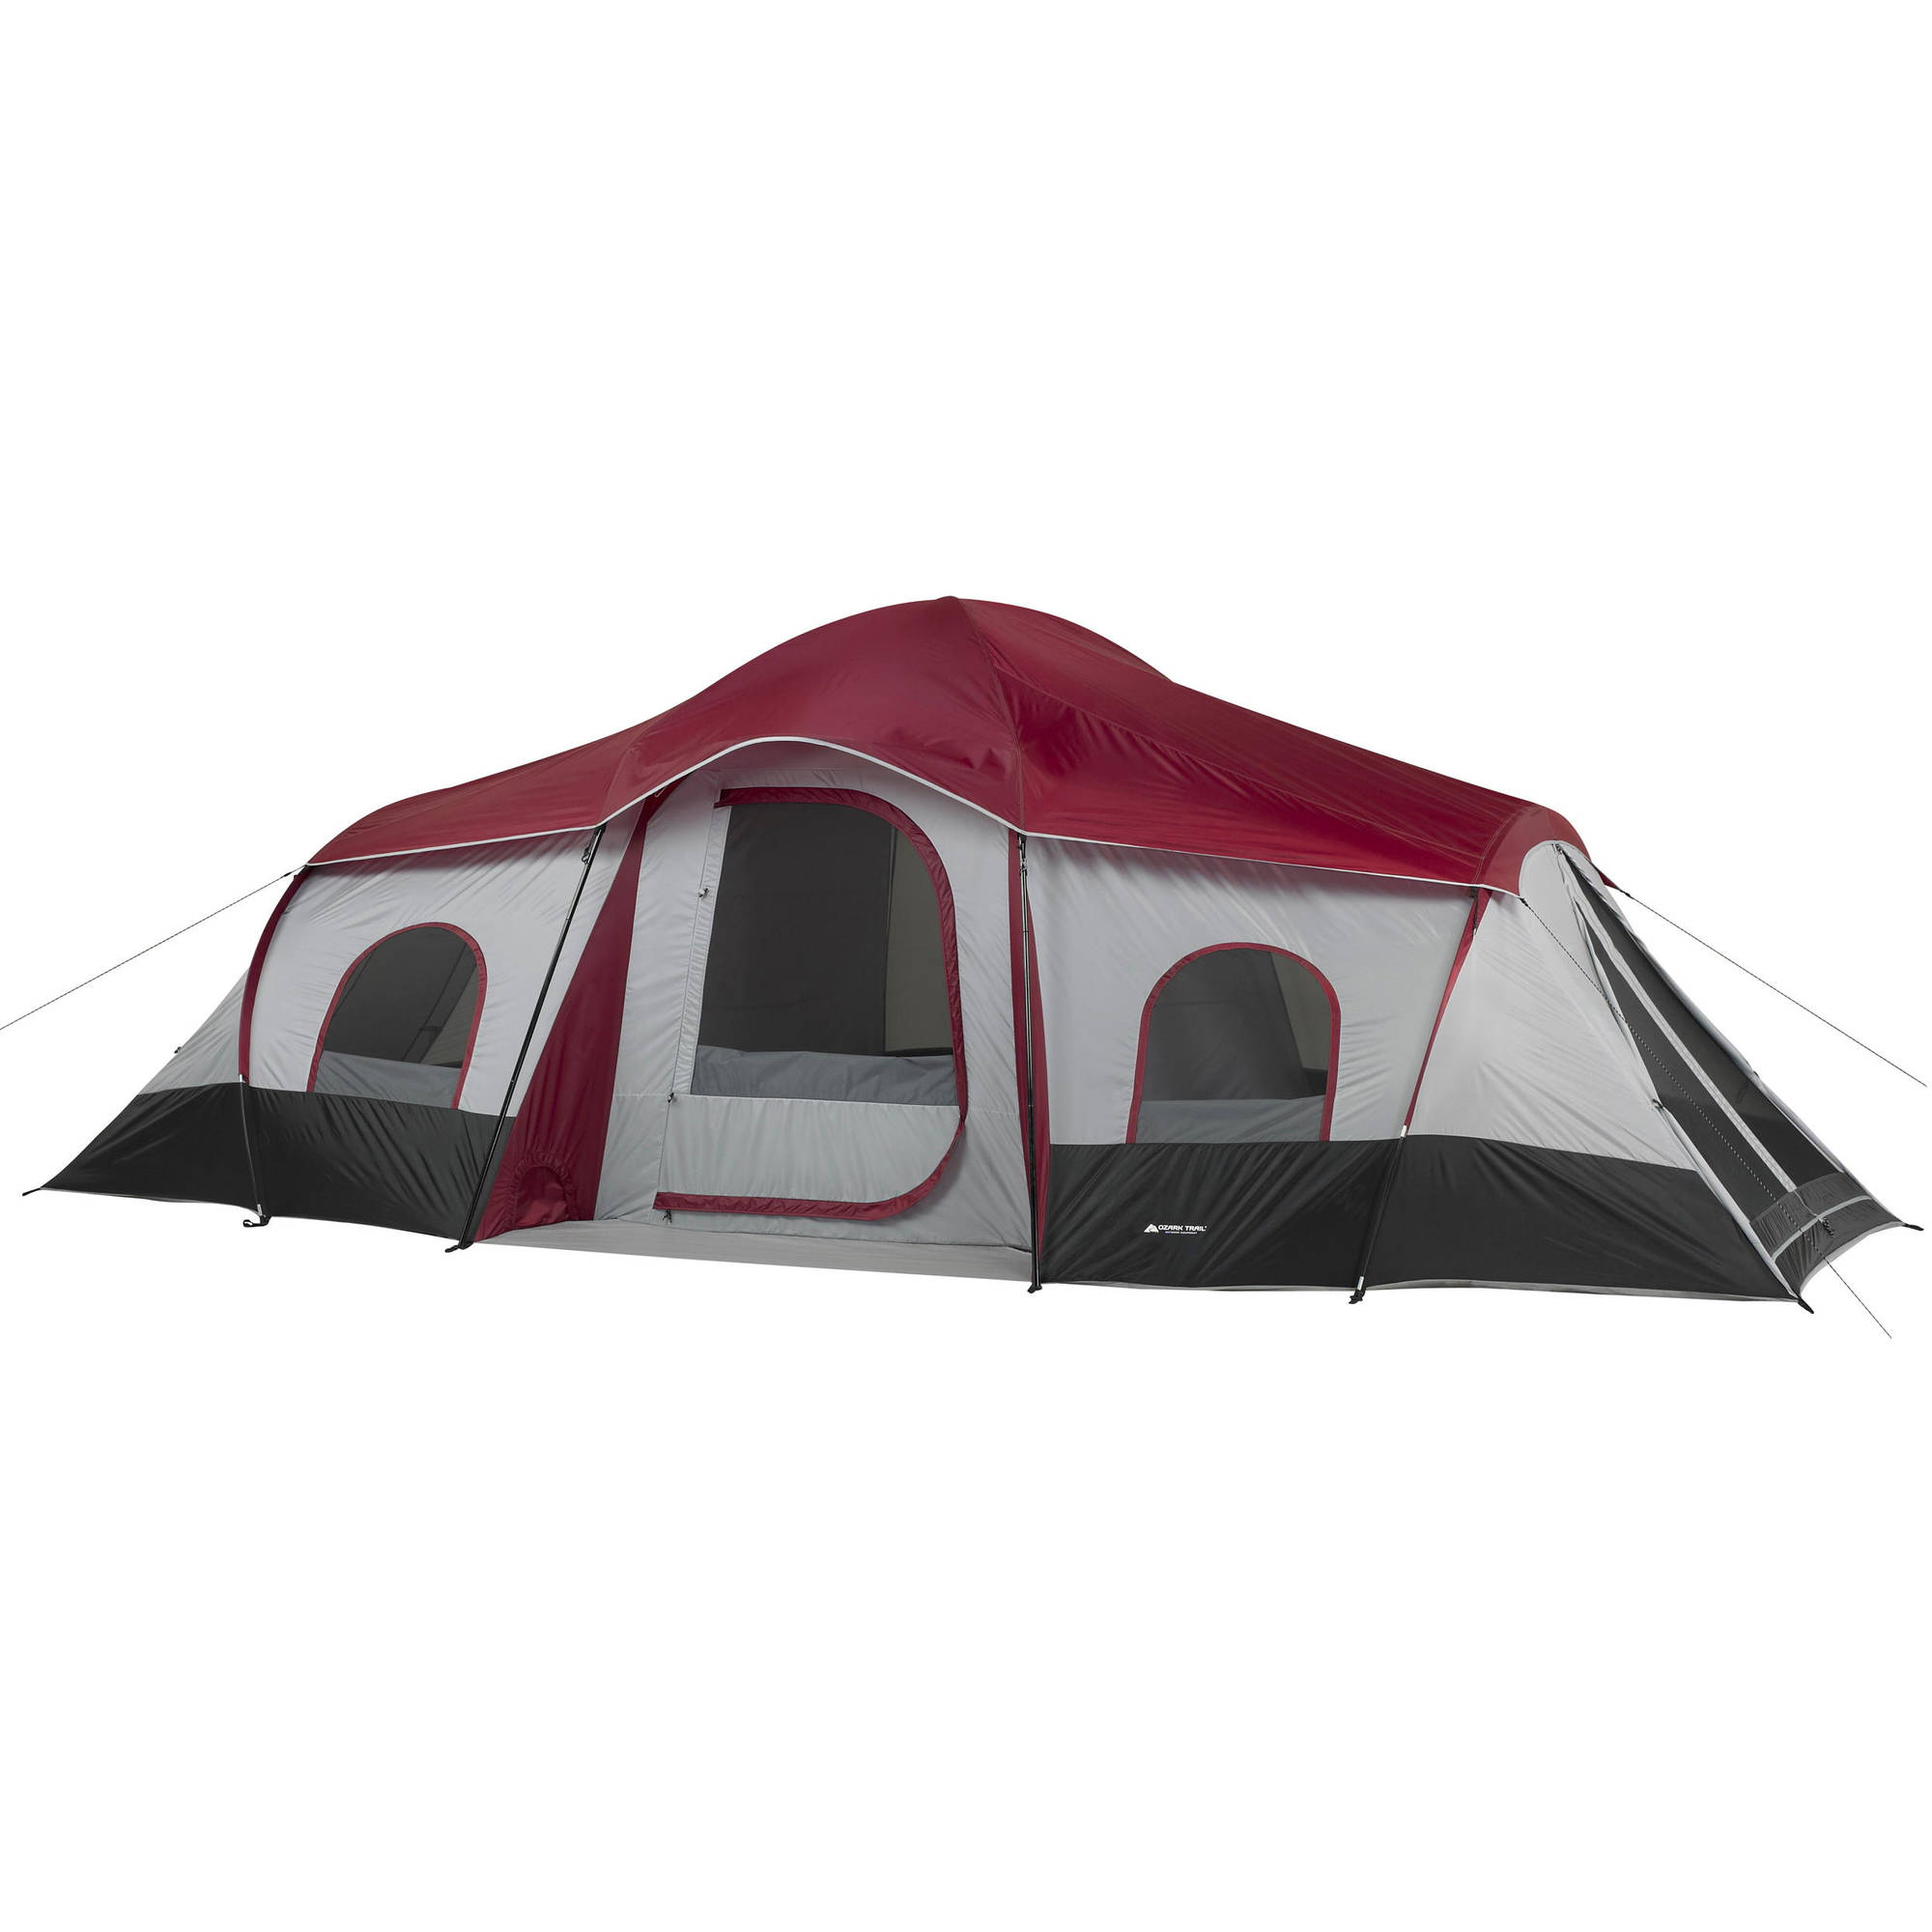 Ozark Trail 10-Person 3-Room Cabin Tent  sc 1 st  Walmart & 3 Room Tents